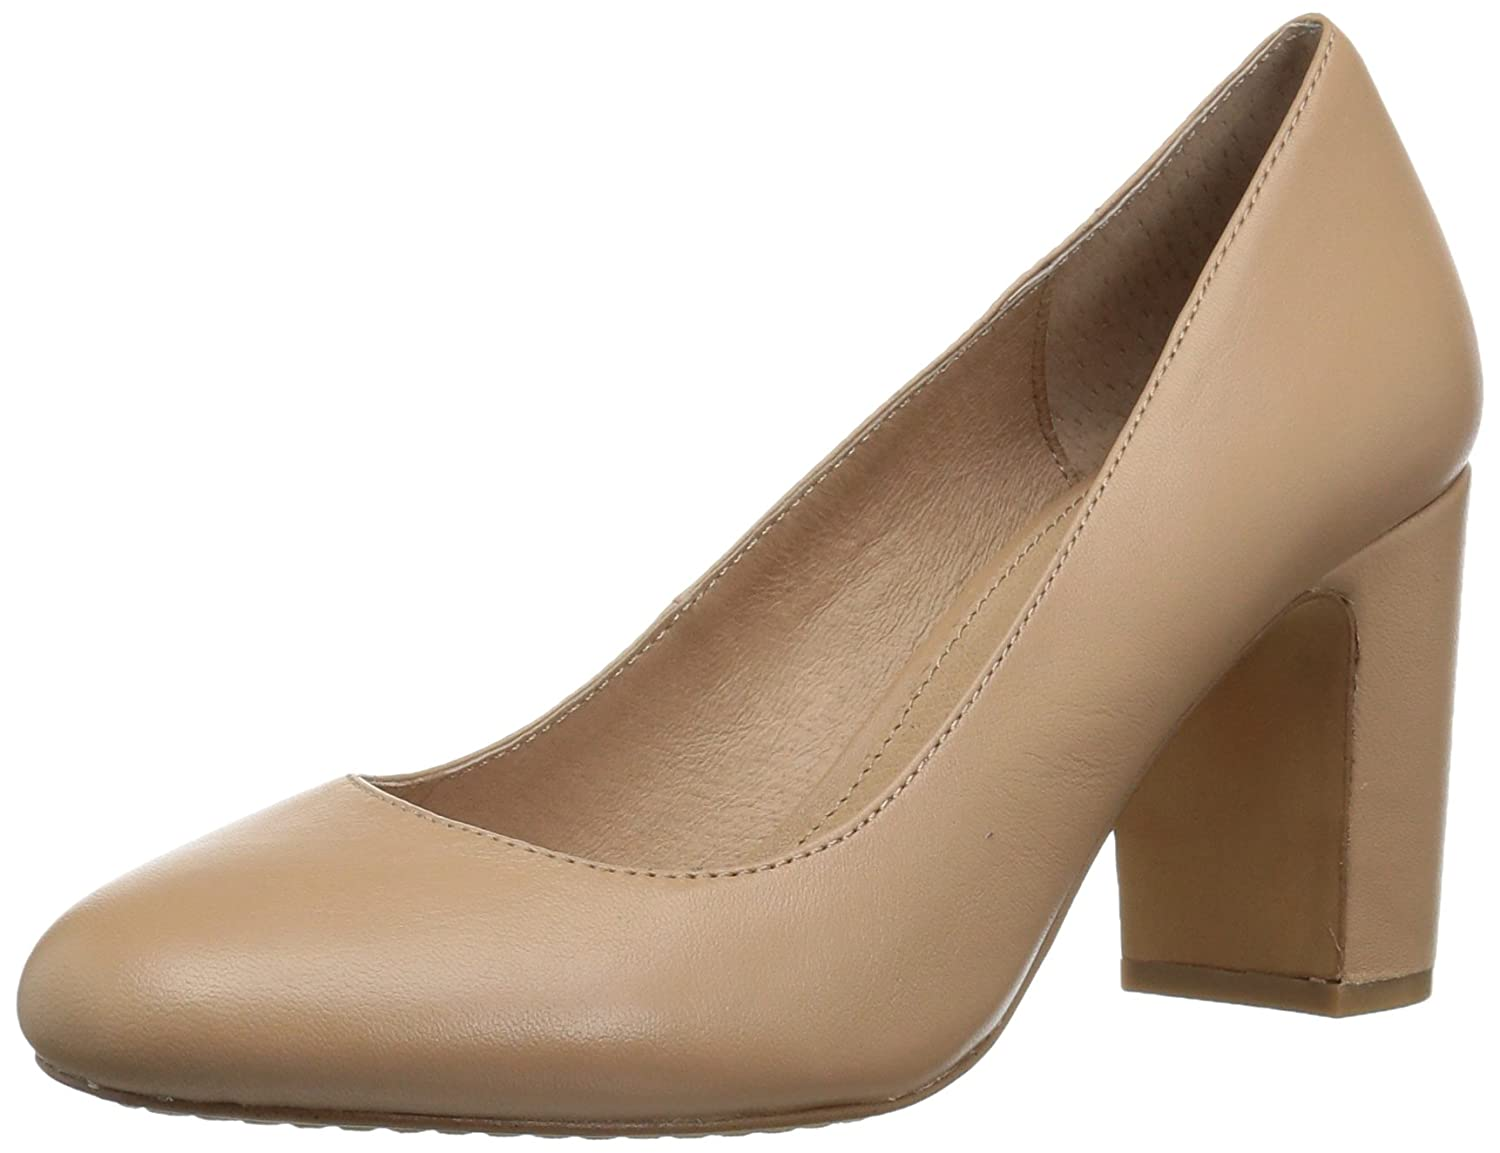 206 Collective Women's Coyle Round Toe Block Heel High Pump B078961G24 12 B(M) US|Neutral Leather